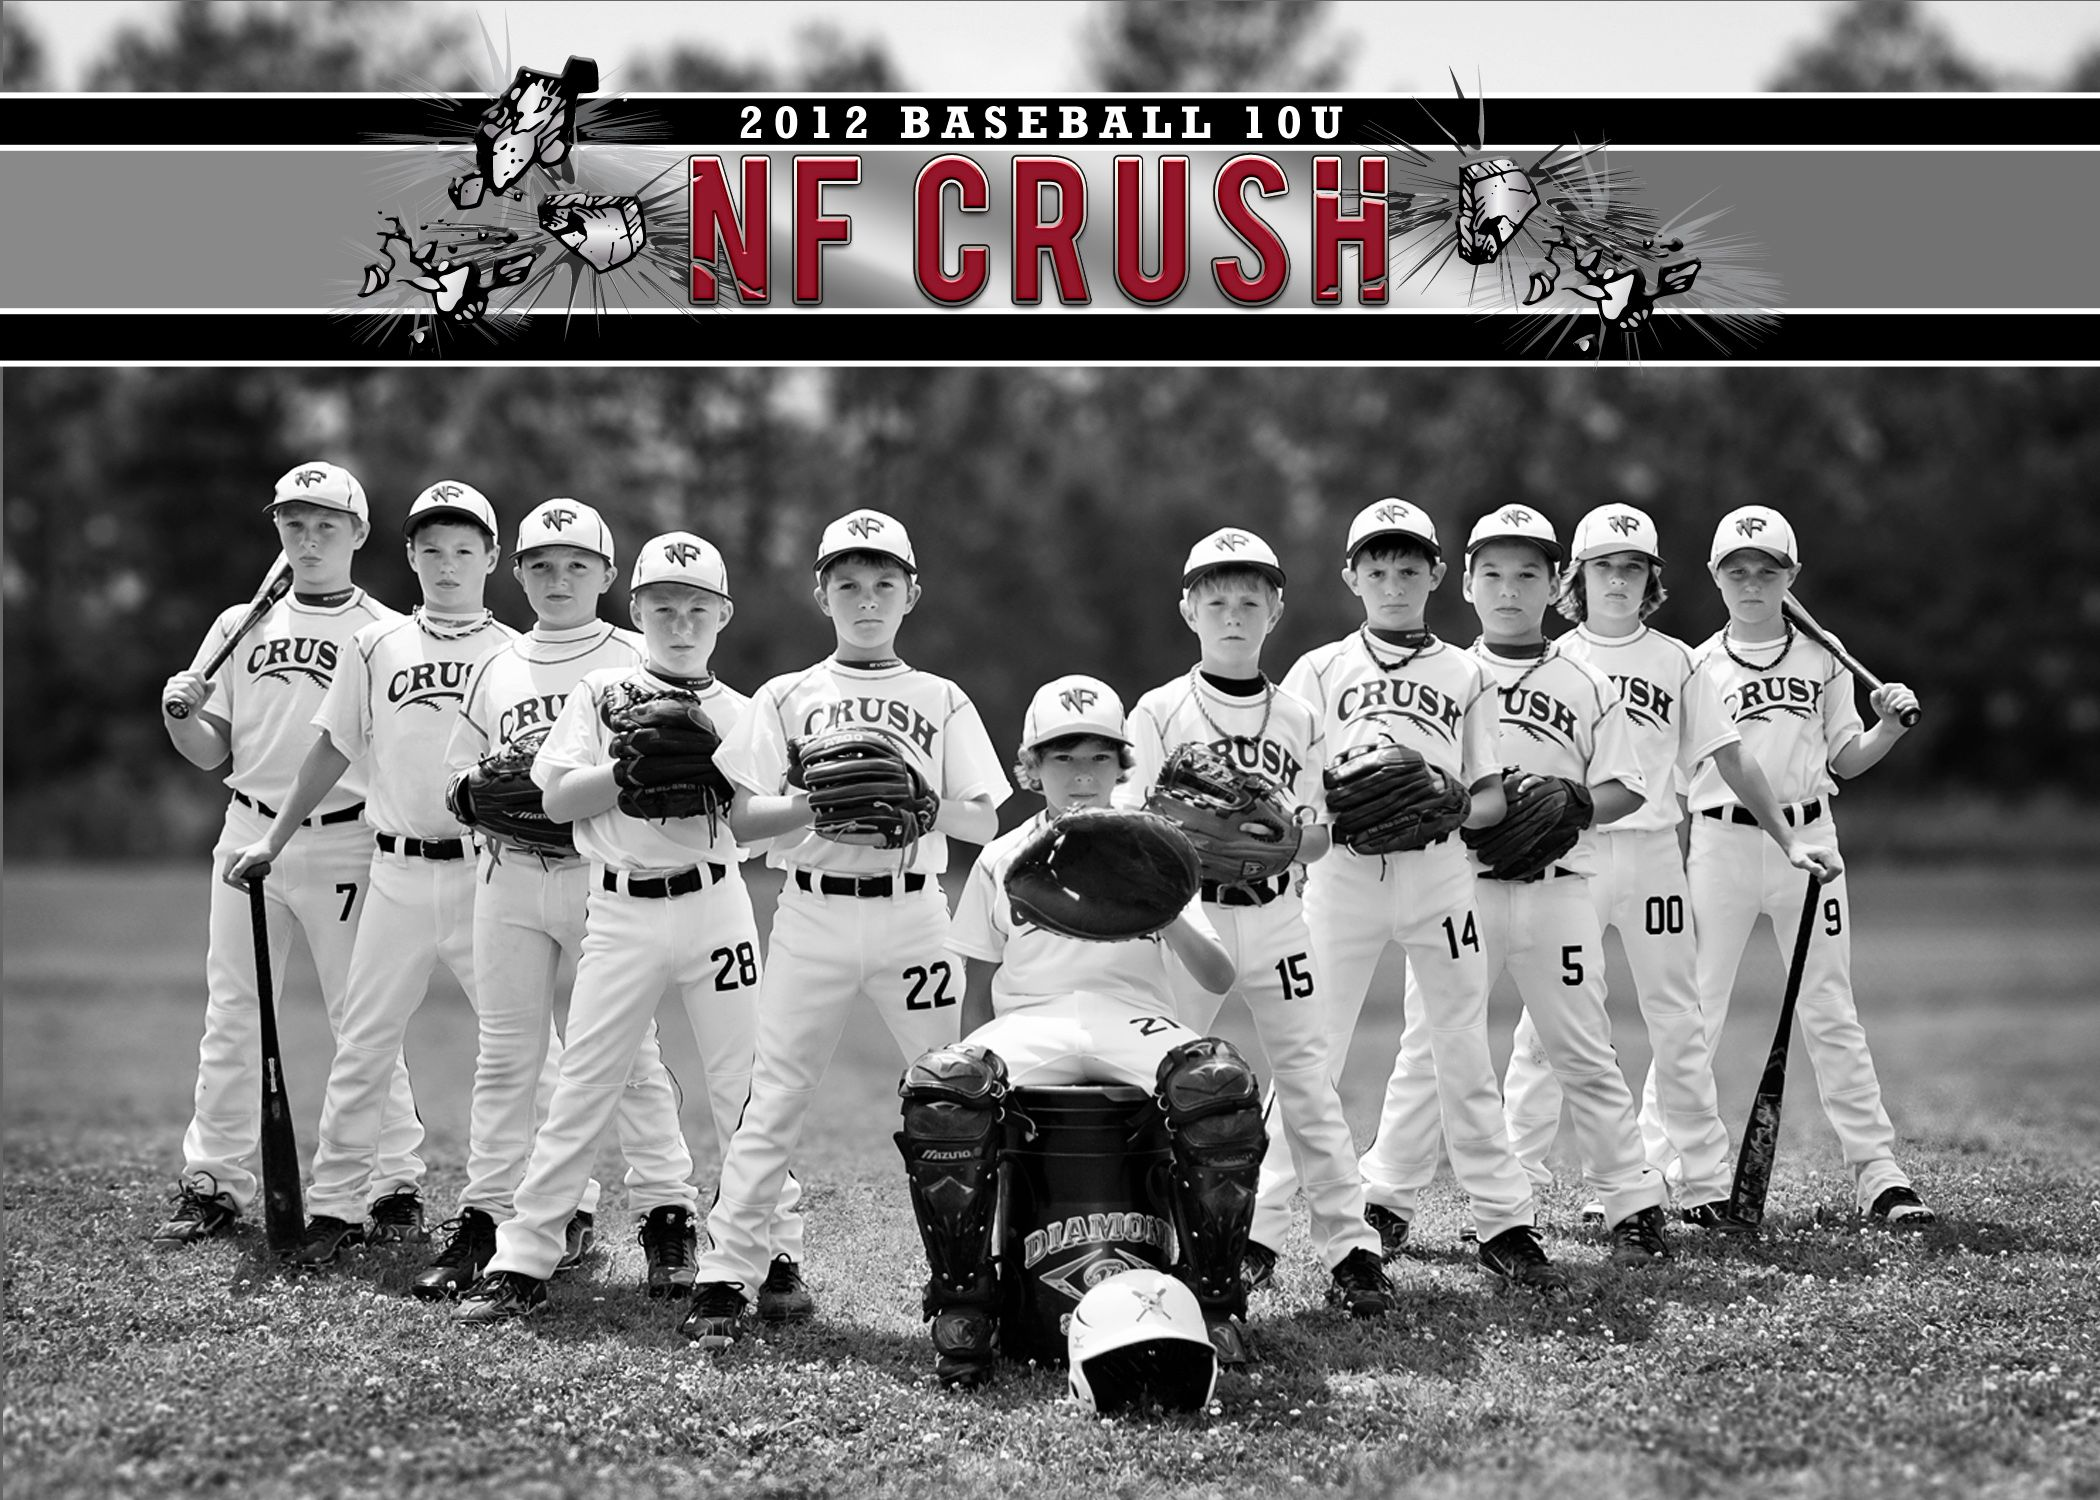 Pin By Chrissy Conrad On Baseball Team Mom Stuff Team Mom Baseball Softball Photography Team Pictures